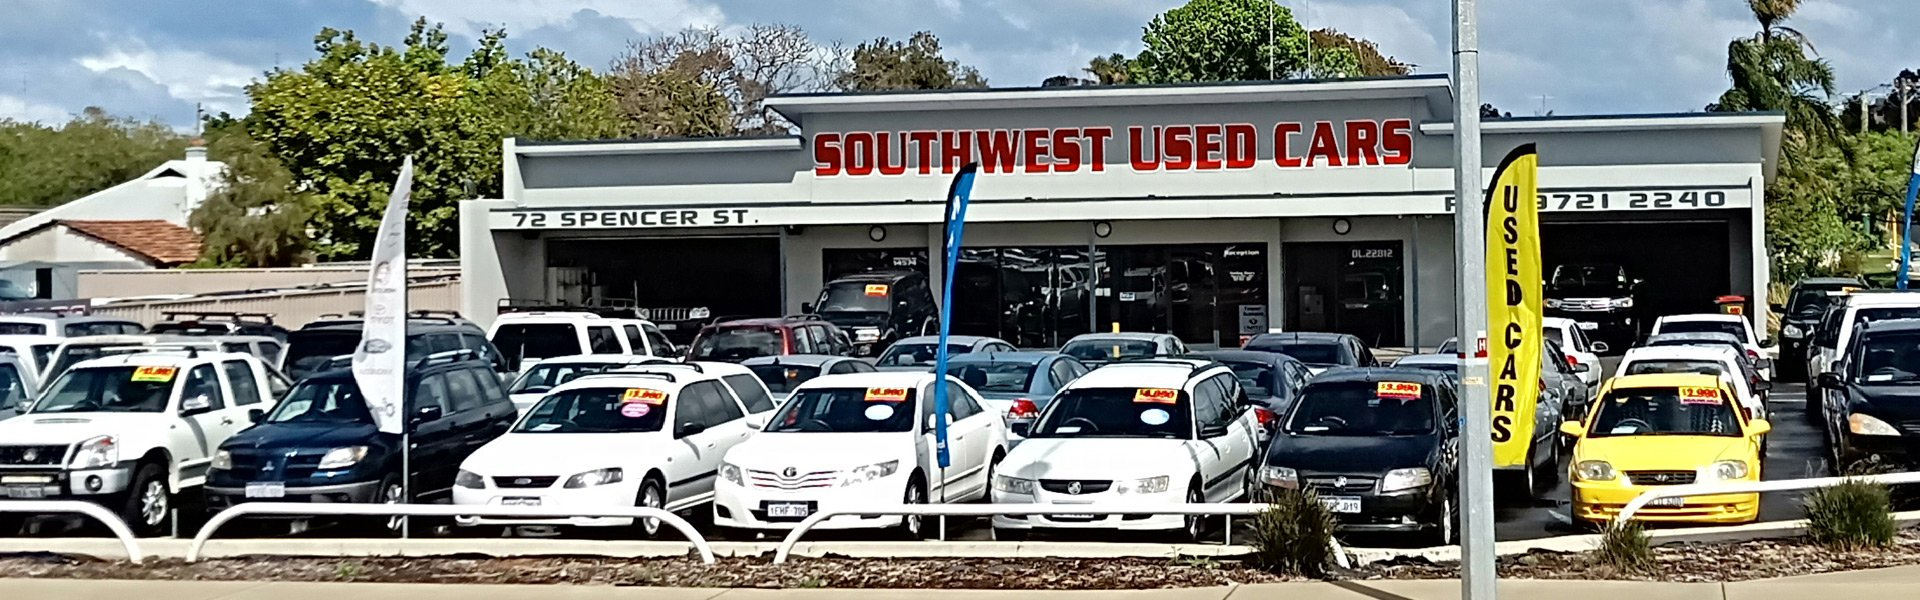 South West Used Cars